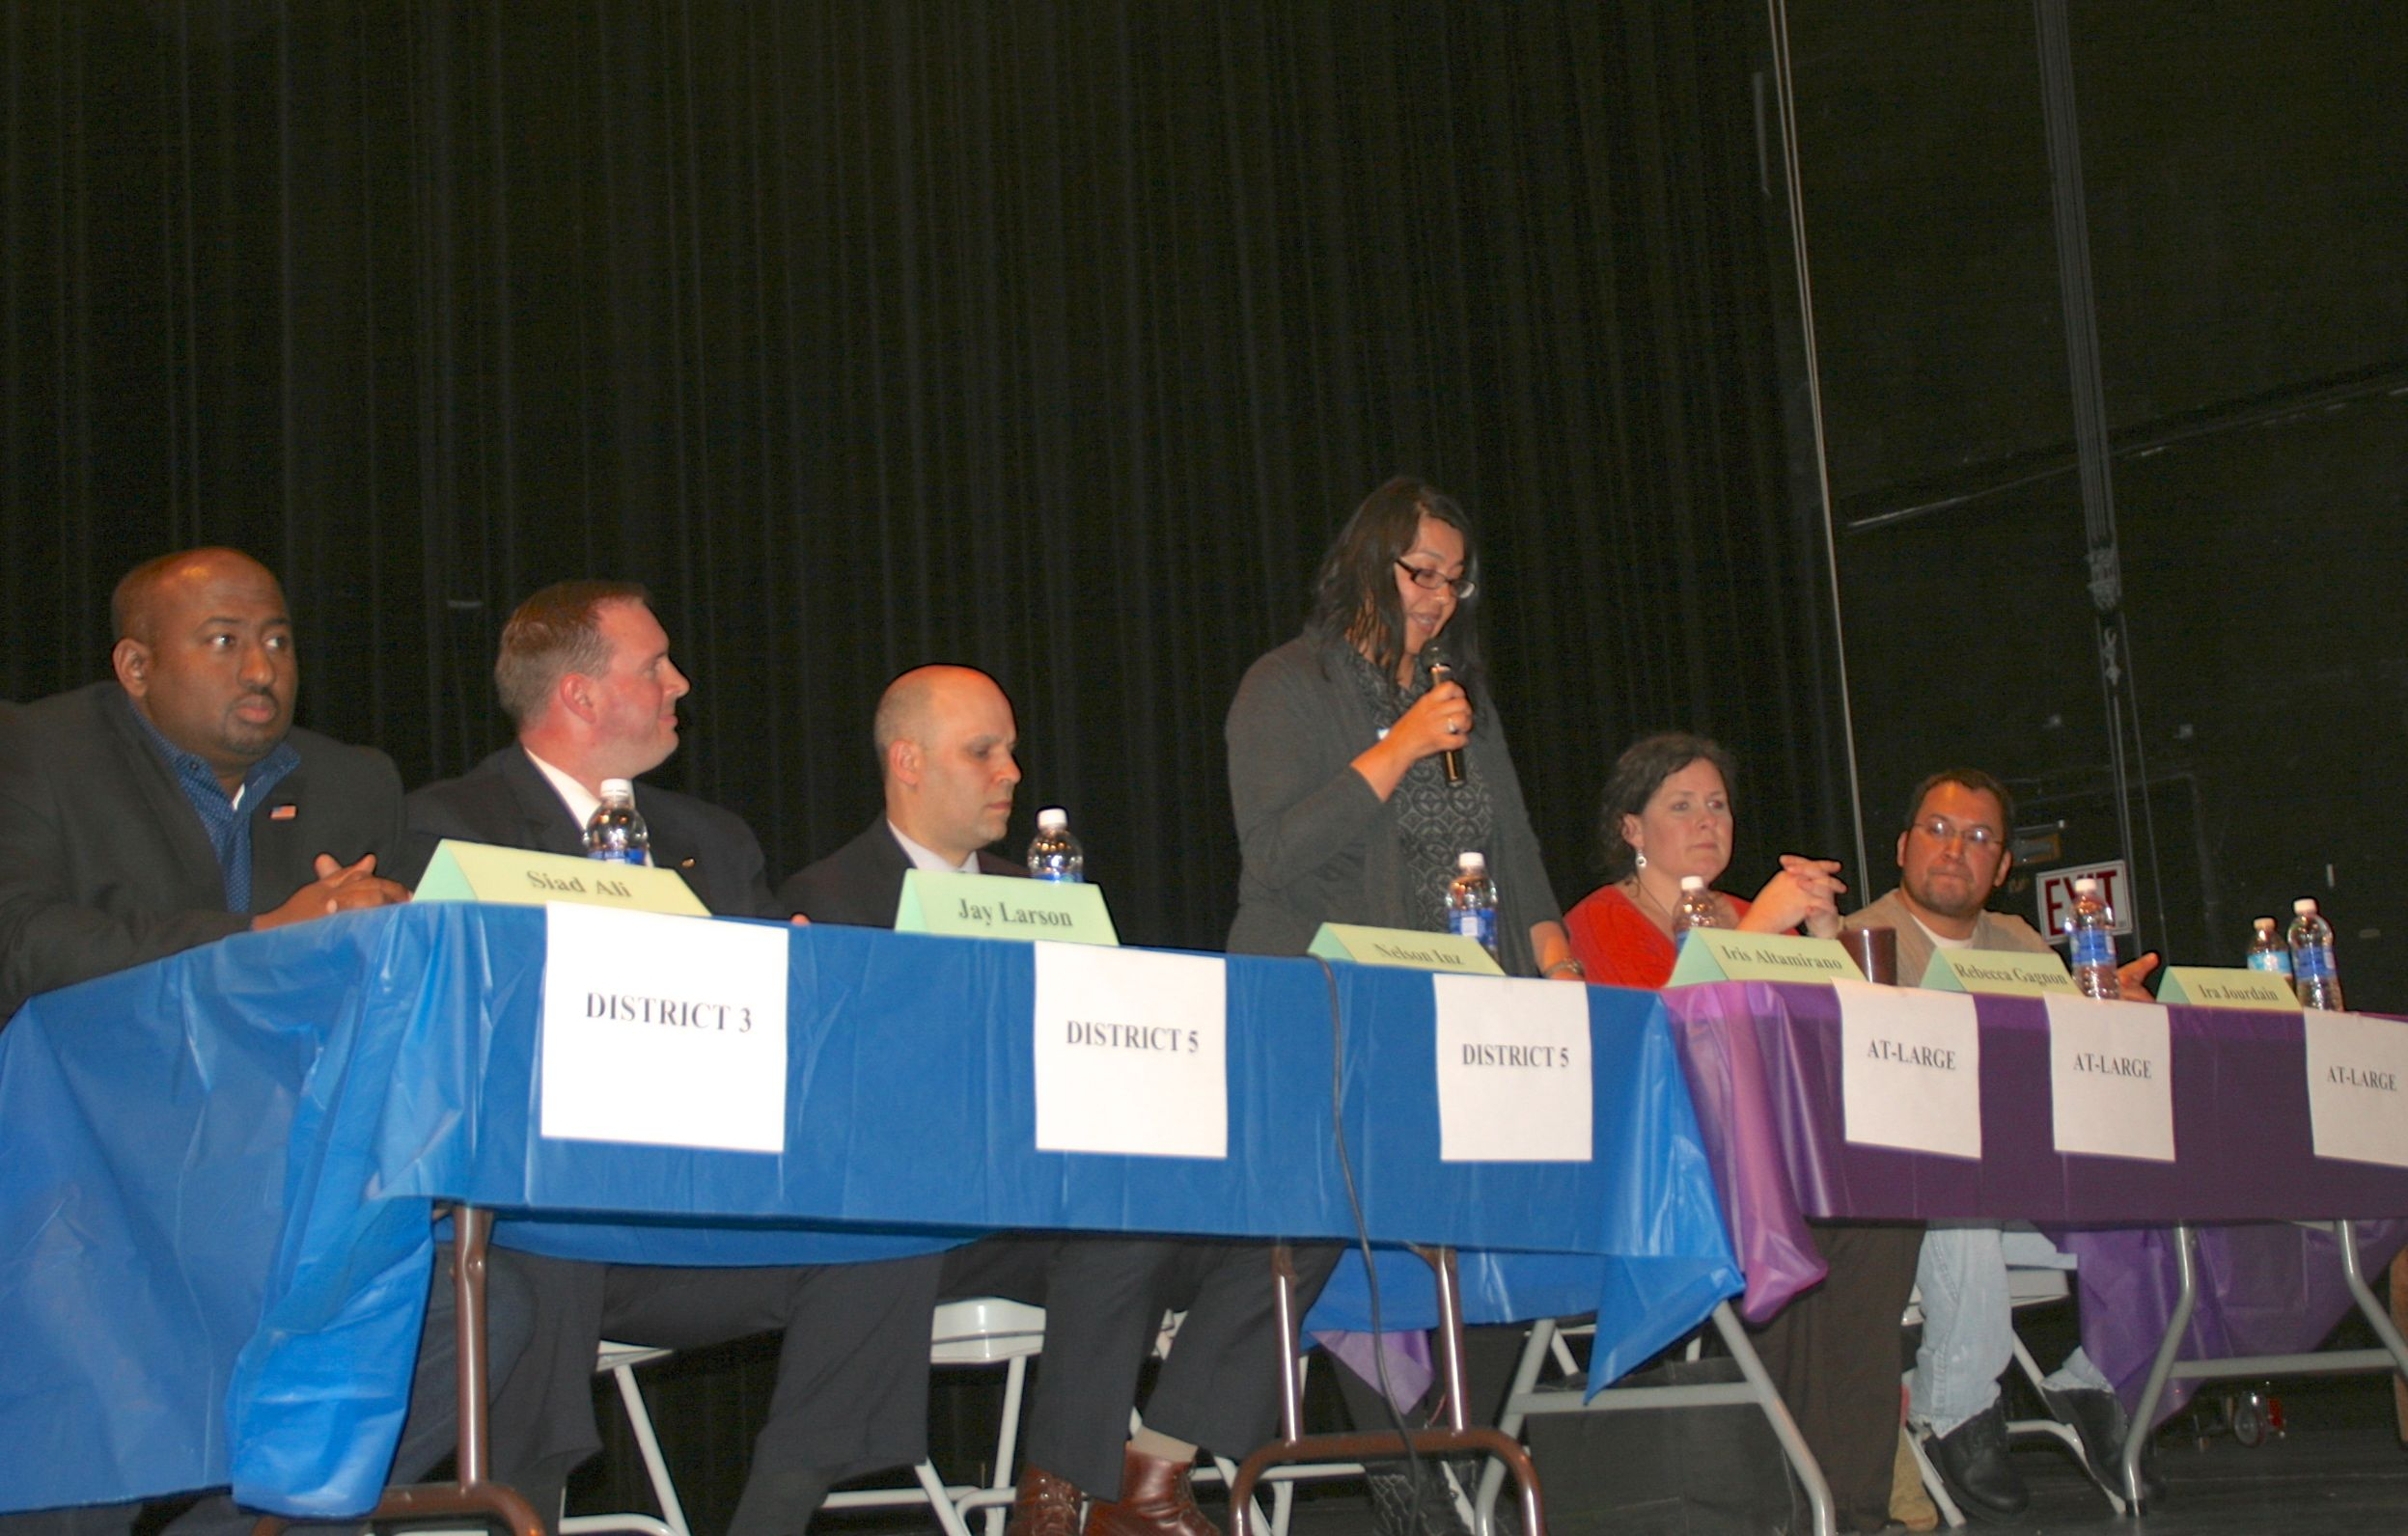 Candidates address the audience about how they would solve problems in public education in Minneapolis.